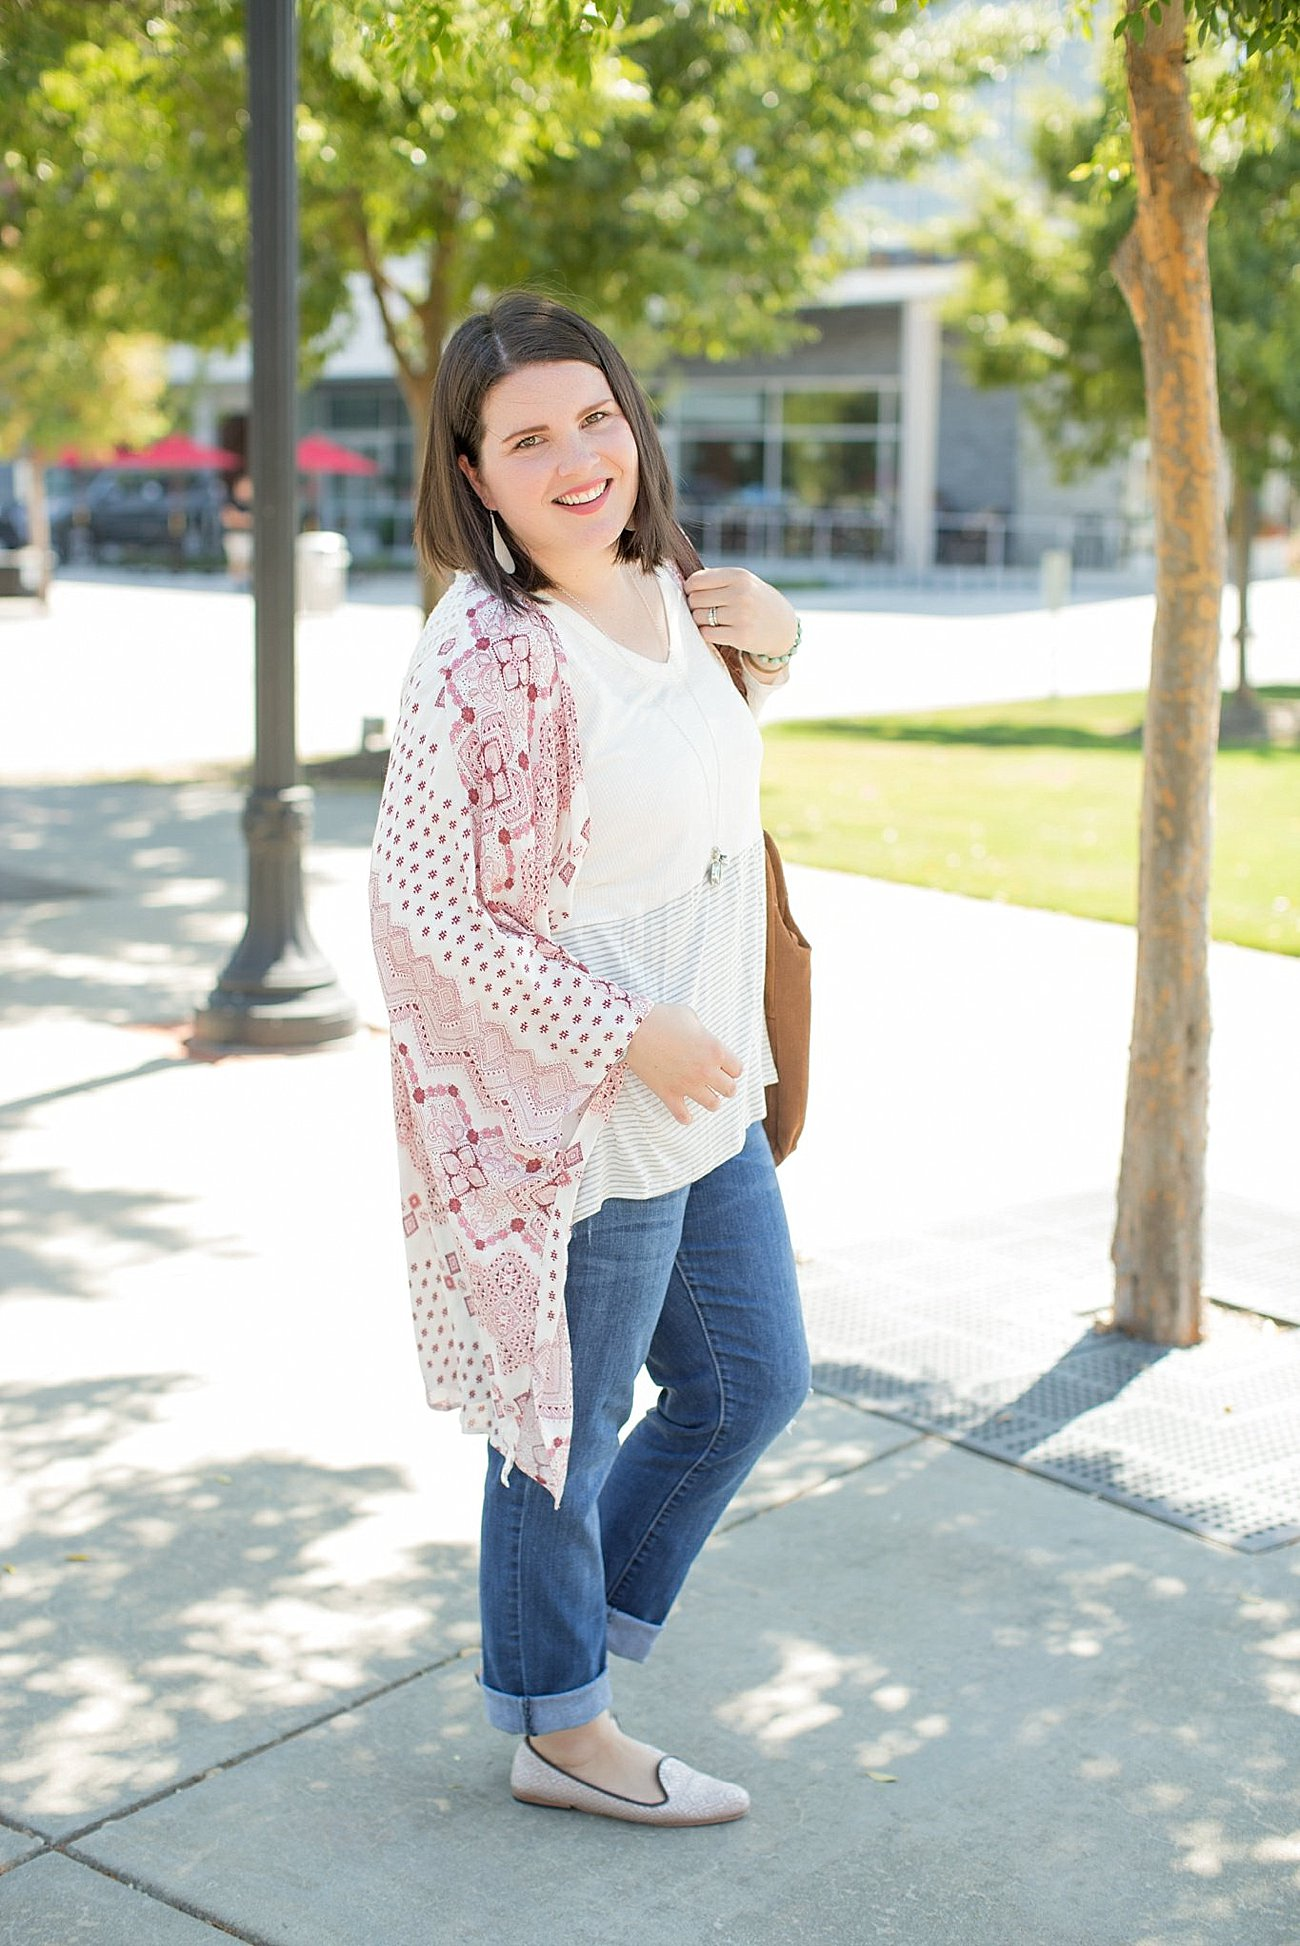 The Flourish Market made in the USA ethical fall clothing (1)